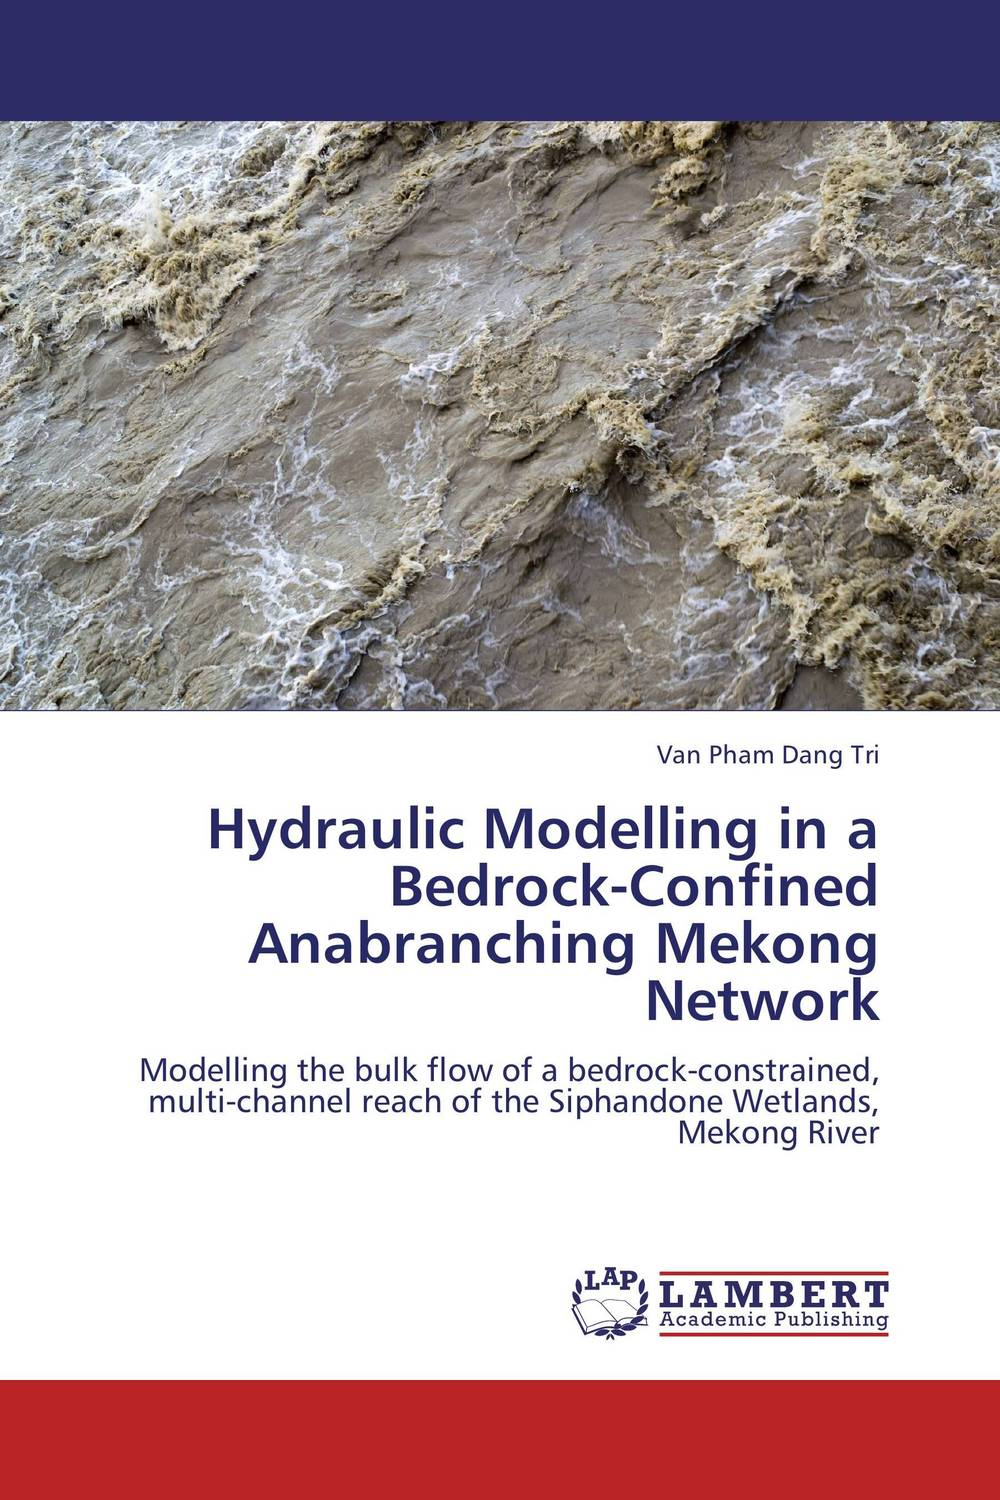 Hydraulic Modelling in a Bedrock-Confined Anabranching Mekong Network hydraulic knockout tool hydraulic hole macking tool hydraulic punch tool syk 15 with the die range from 63mm to 114mm